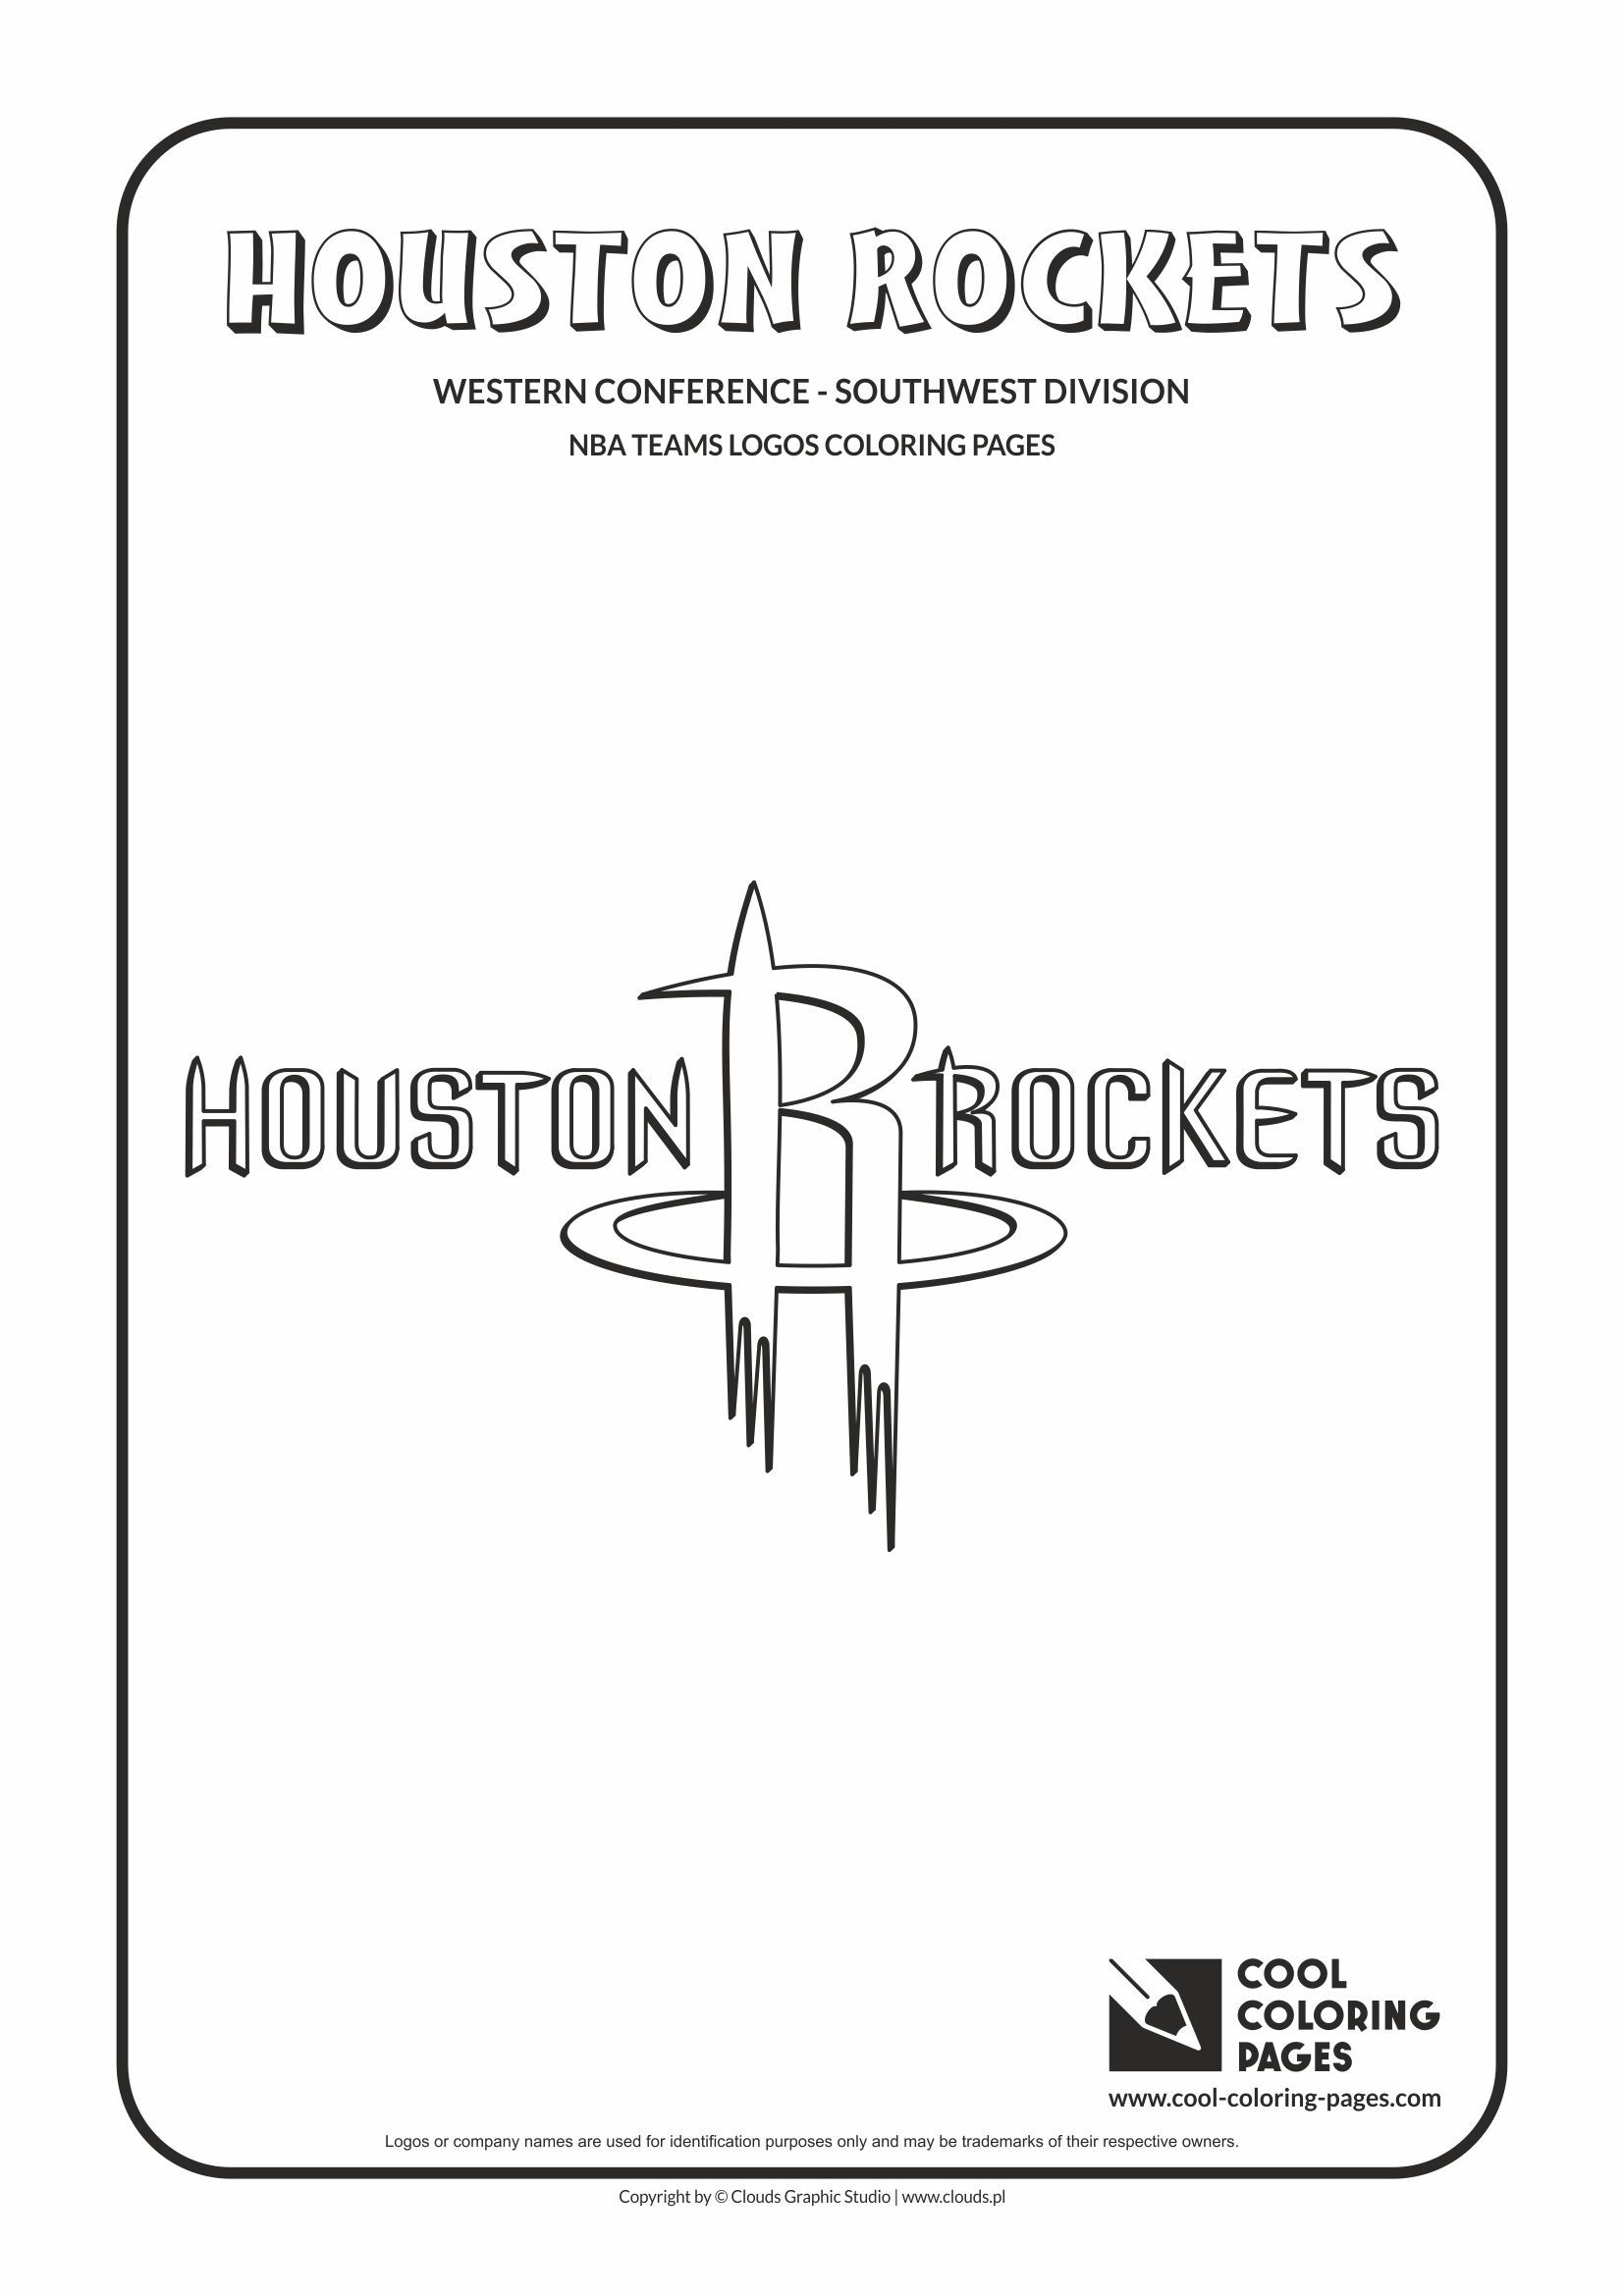 Cool Coloring Pages - NBA Basketball Clubs Logos - Western ...